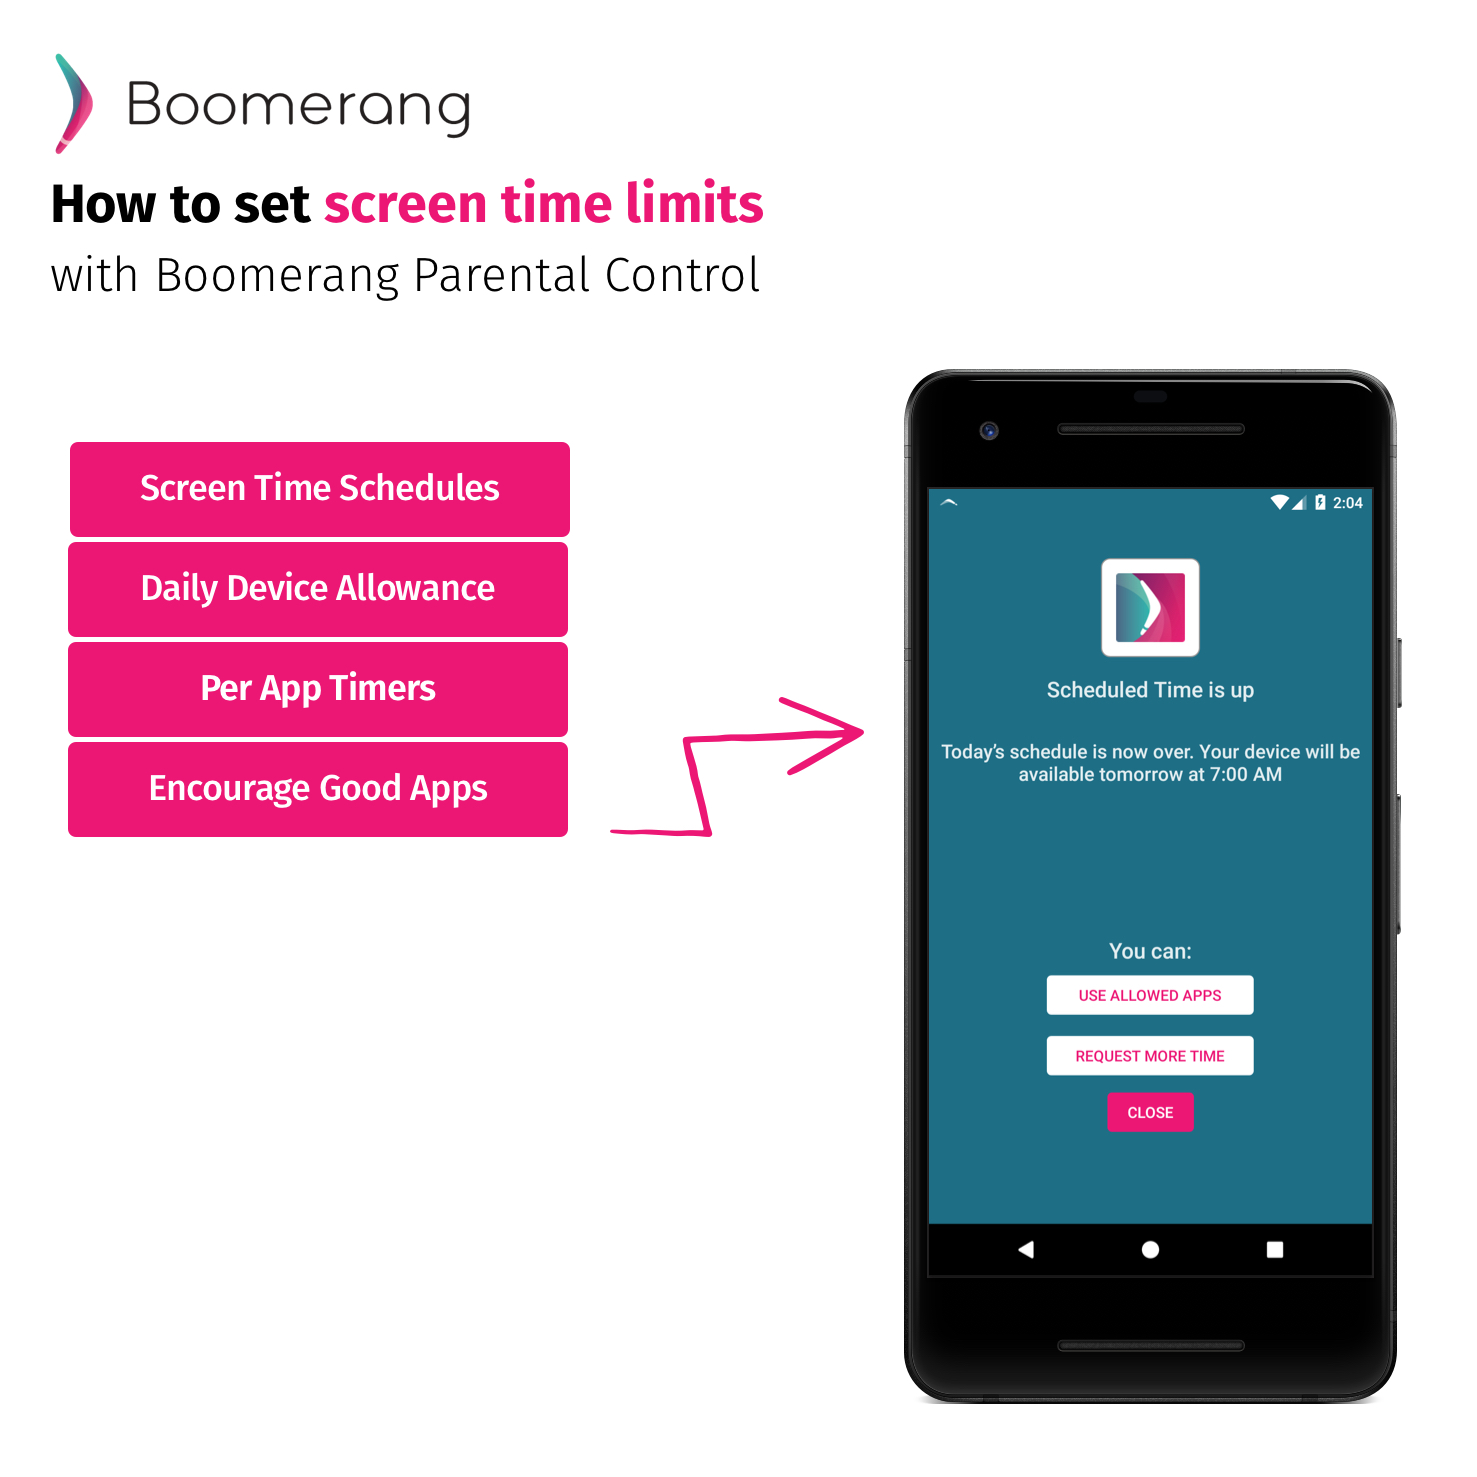 How to set up time limits with Boomerang Parental Control